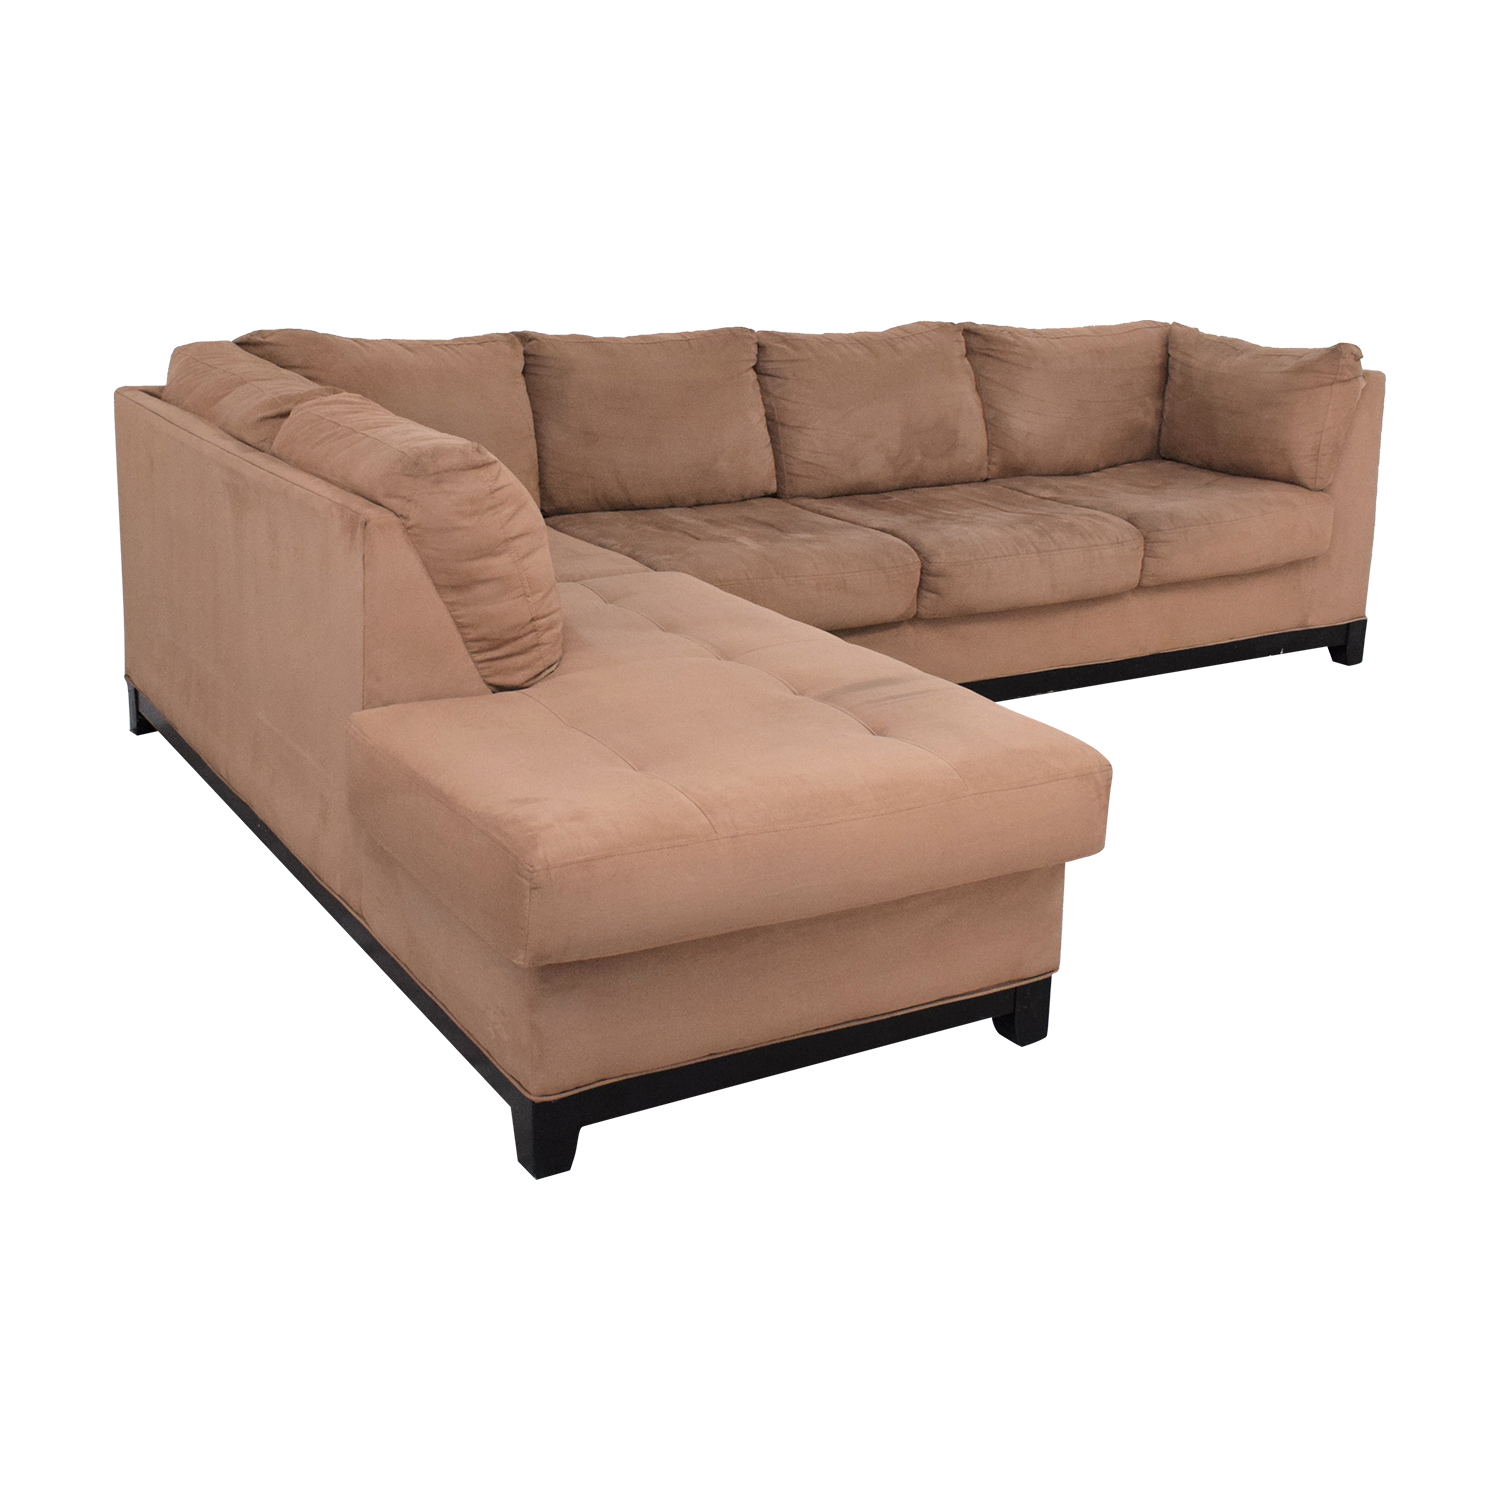 Raymour & Flanigan Raymour & Flanigan Two Piece Chaise Sectional Sofa dimensions